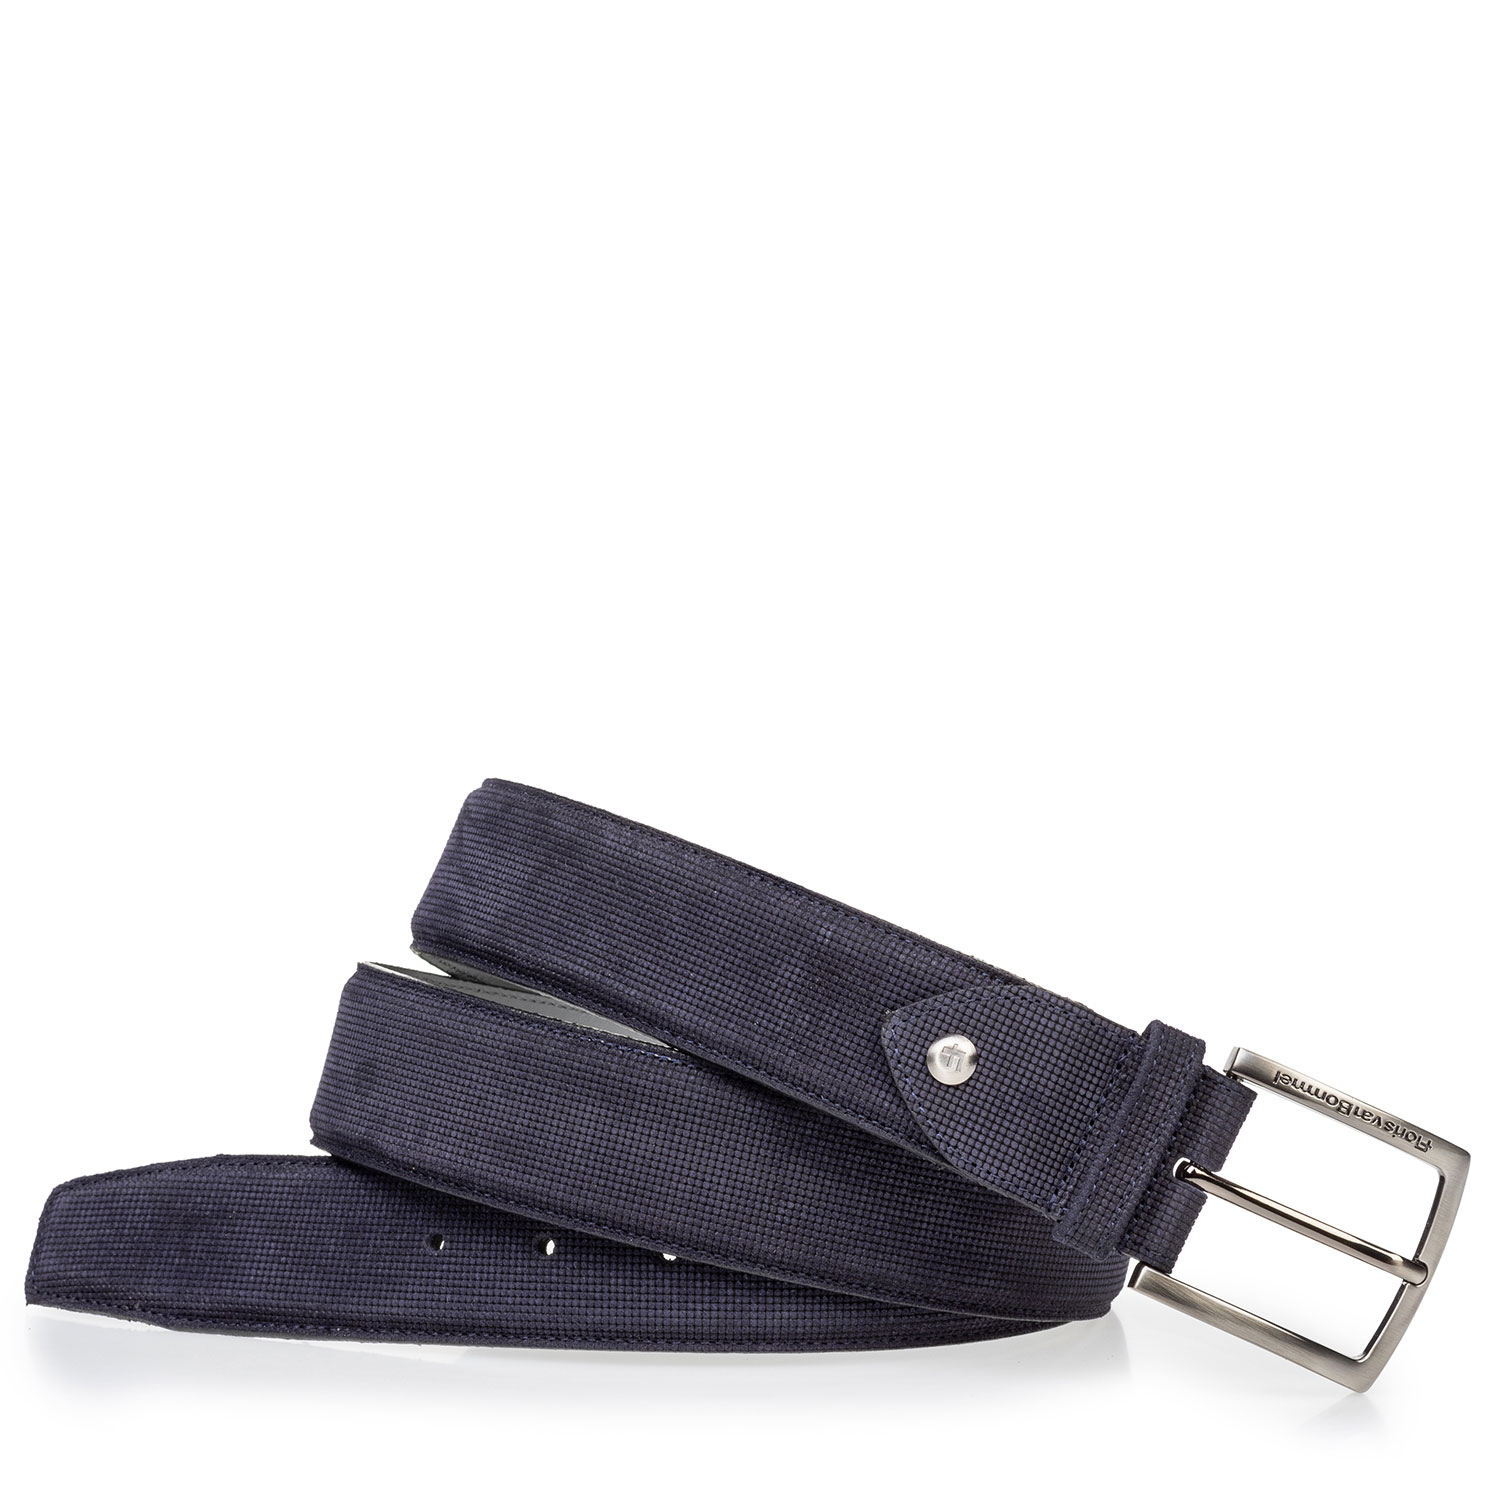 75204/01 - Suede leather belt blue with print